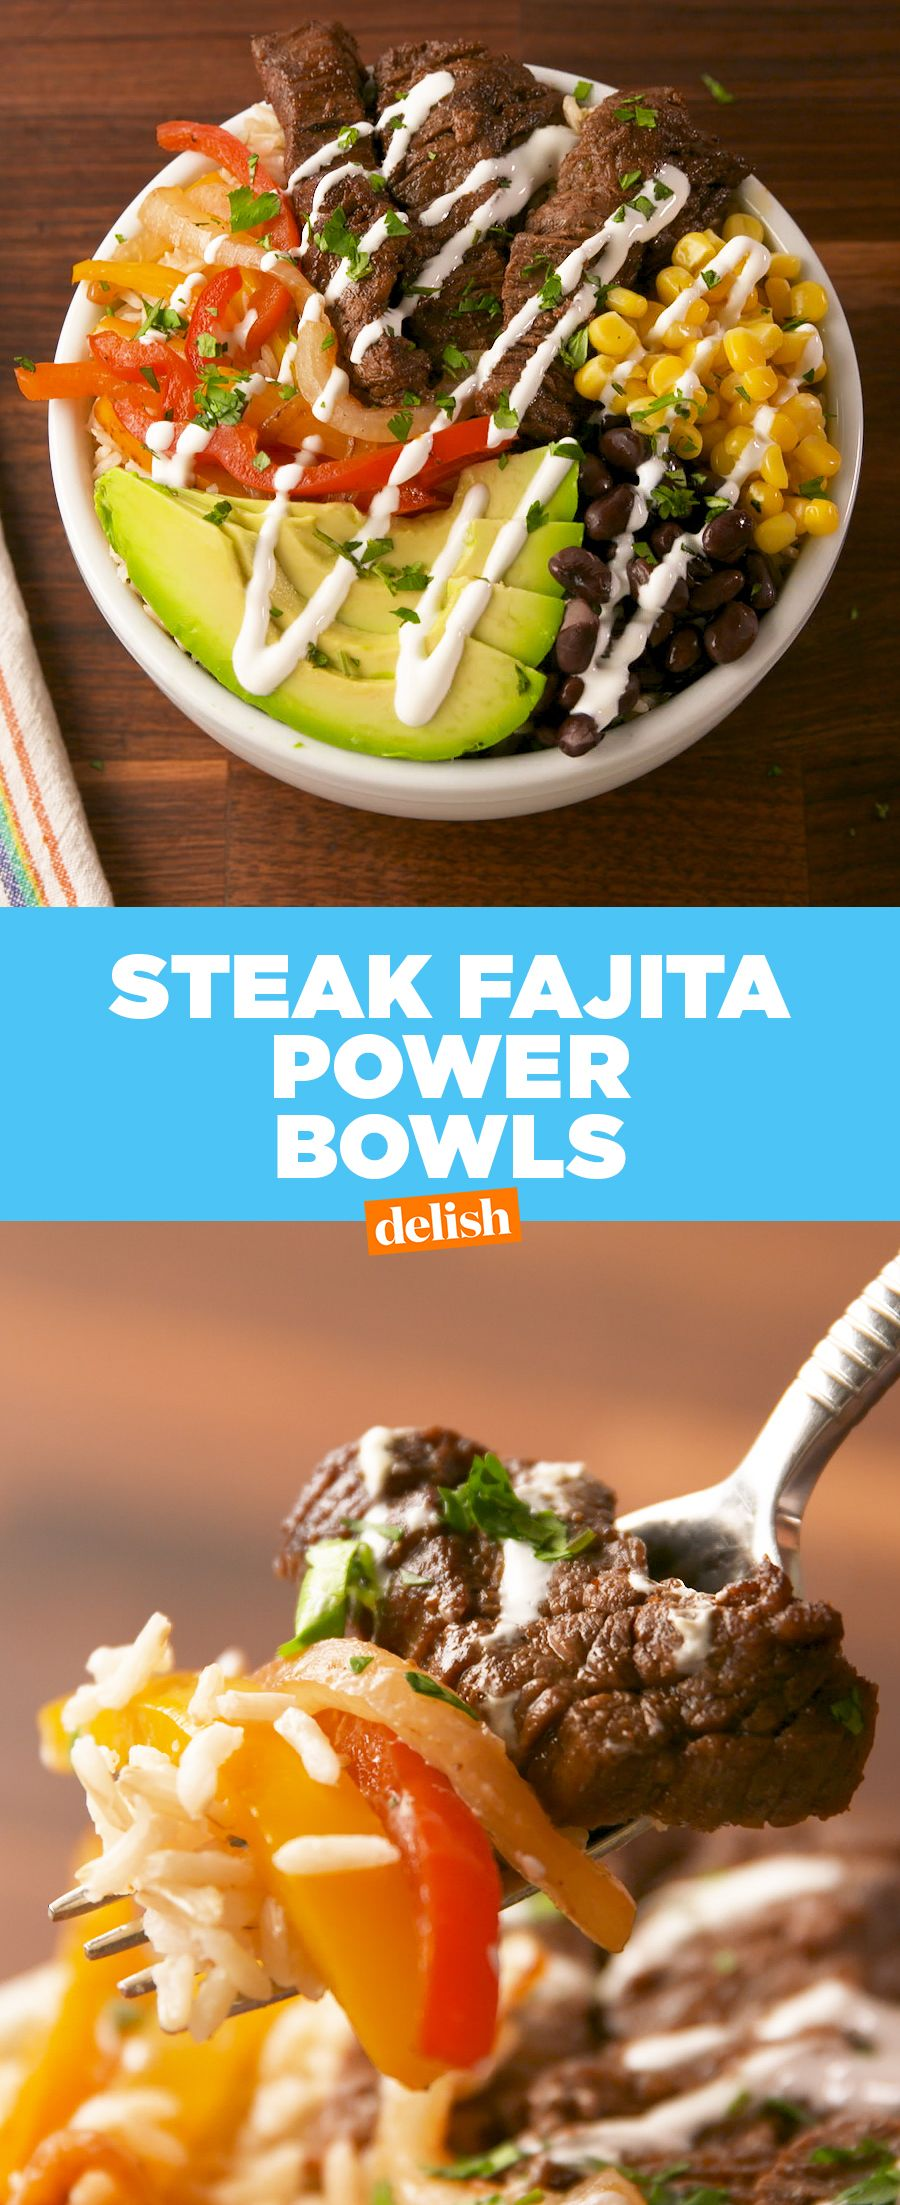 Steak fajita power bowls recipe delish steak and onions steak fajita power bowls forumfinder Choice Image